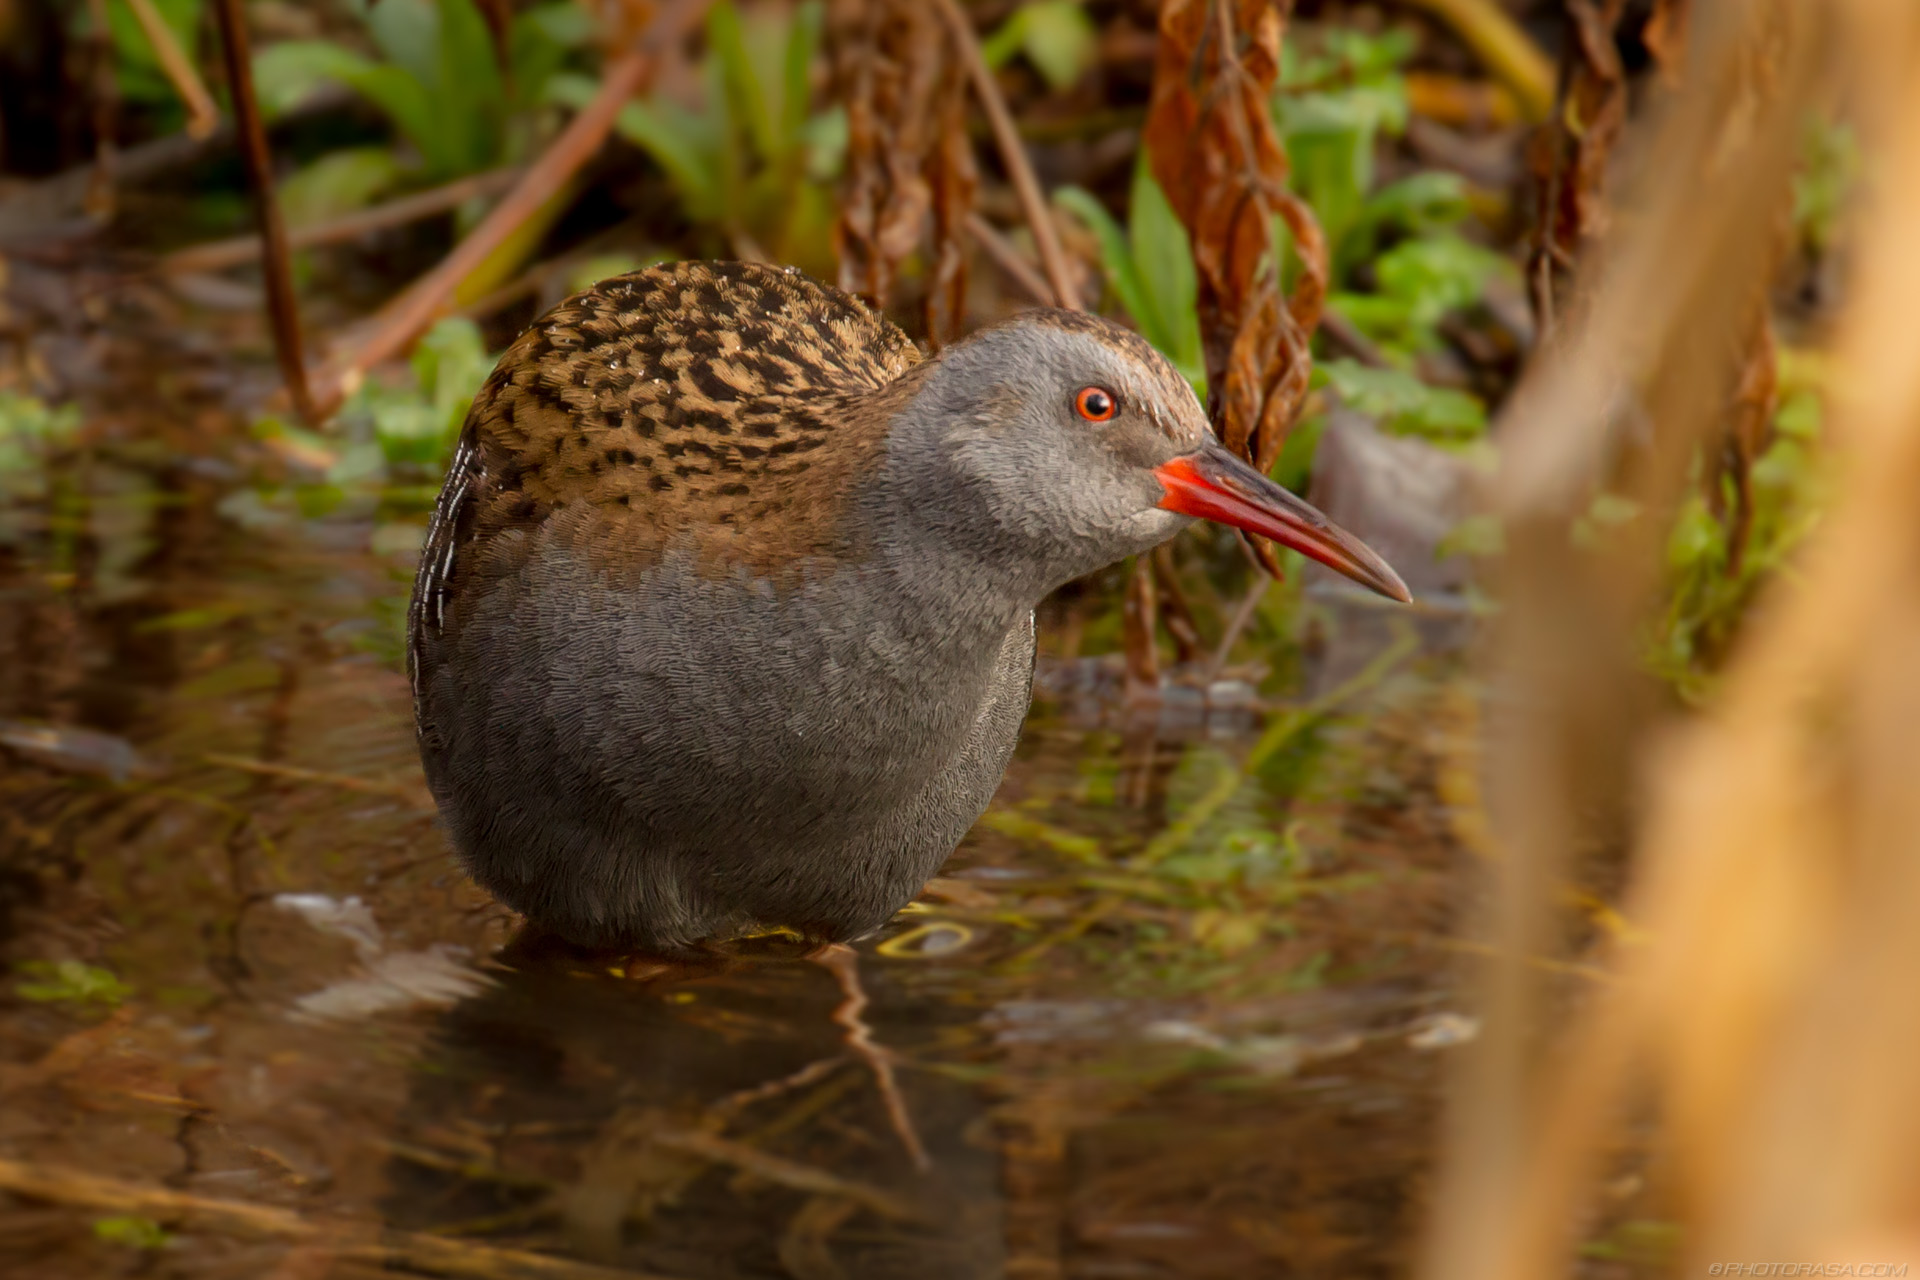 https://photorasa.com/water-rail-by-the-stream/water-rail-crouching/